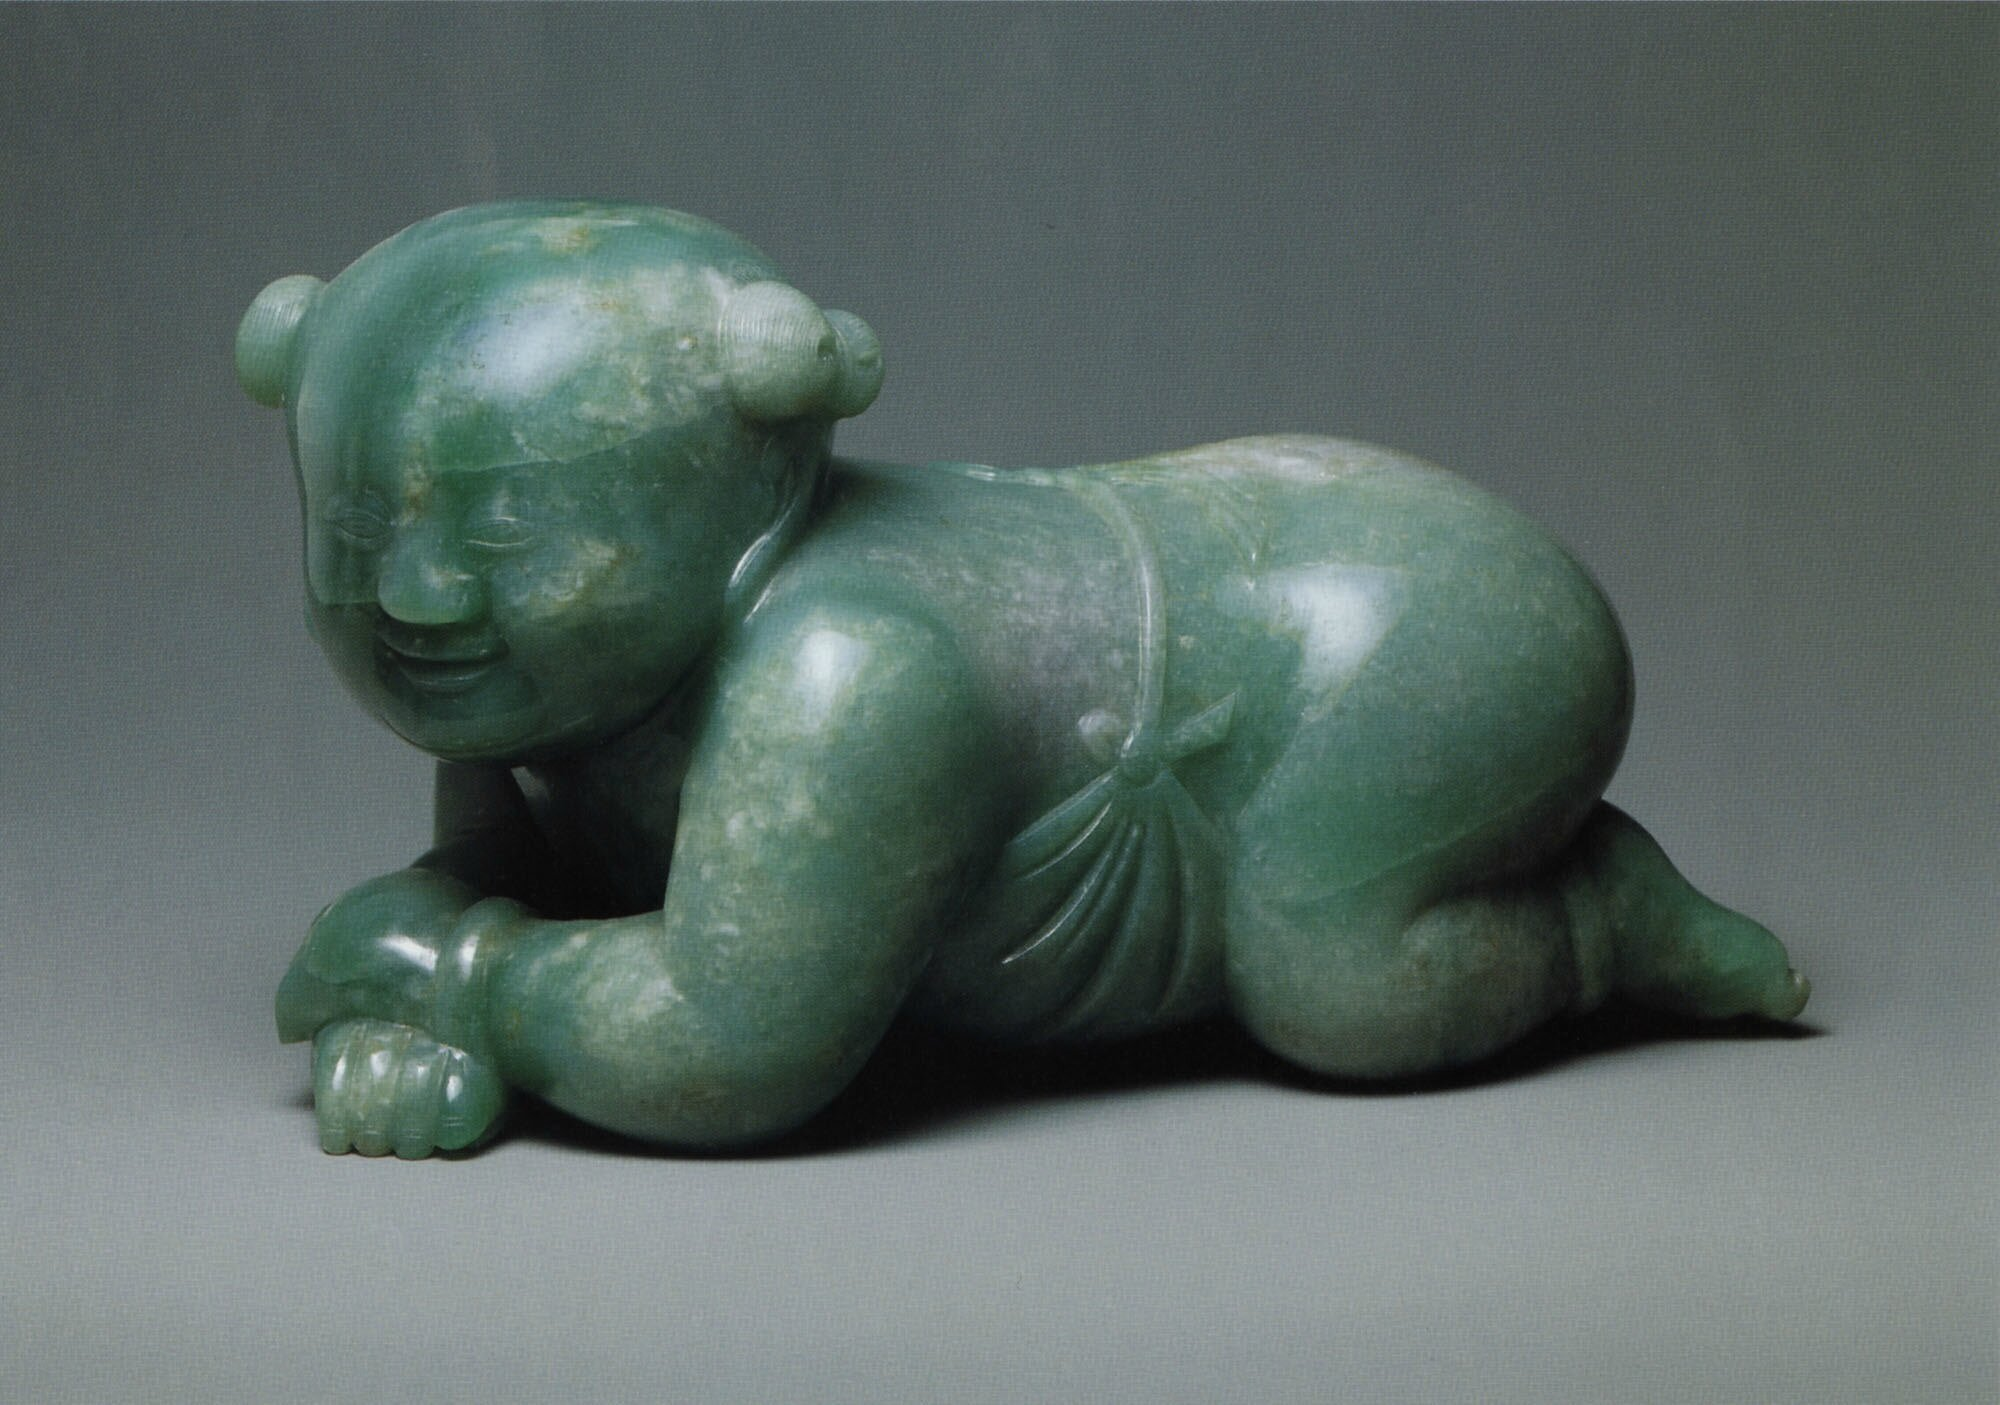 'A Passion for Jade: The Heber Bishop Collection' on view at the Metropolitan Museum of Art